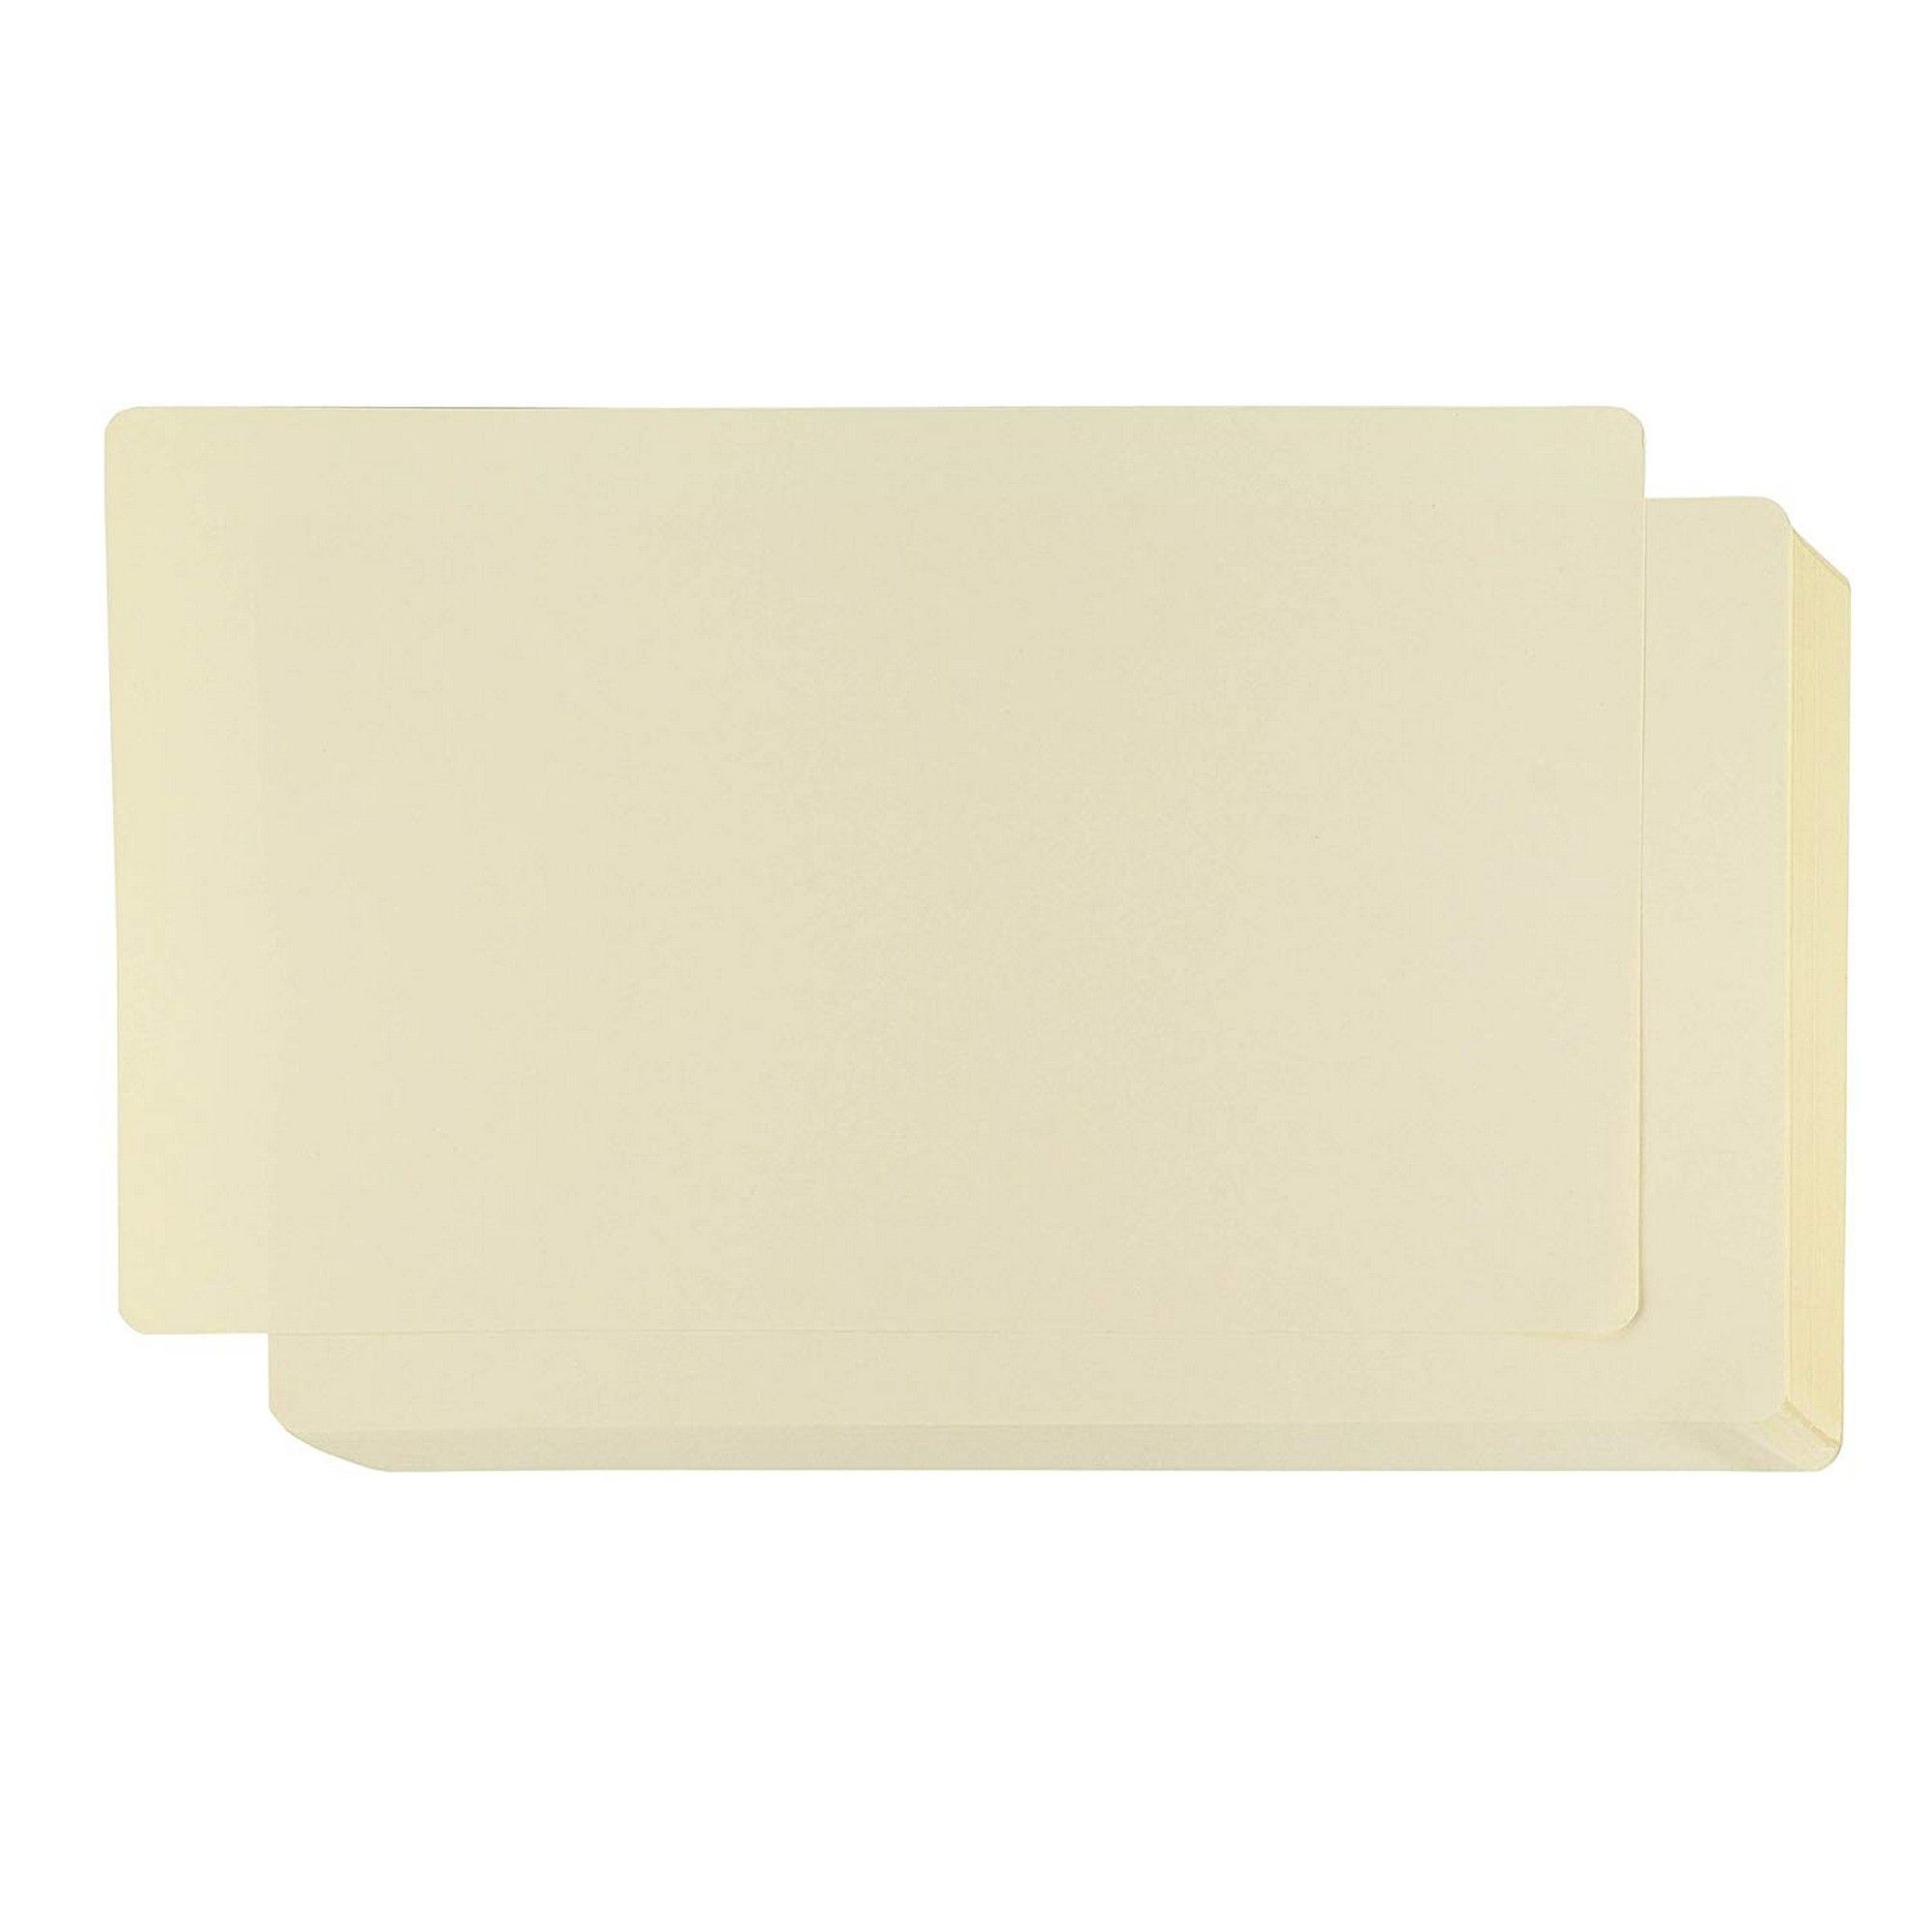 White Card Stock Paper with Round Edges 8.5 x 14 in, 60 Sheets Letter Size